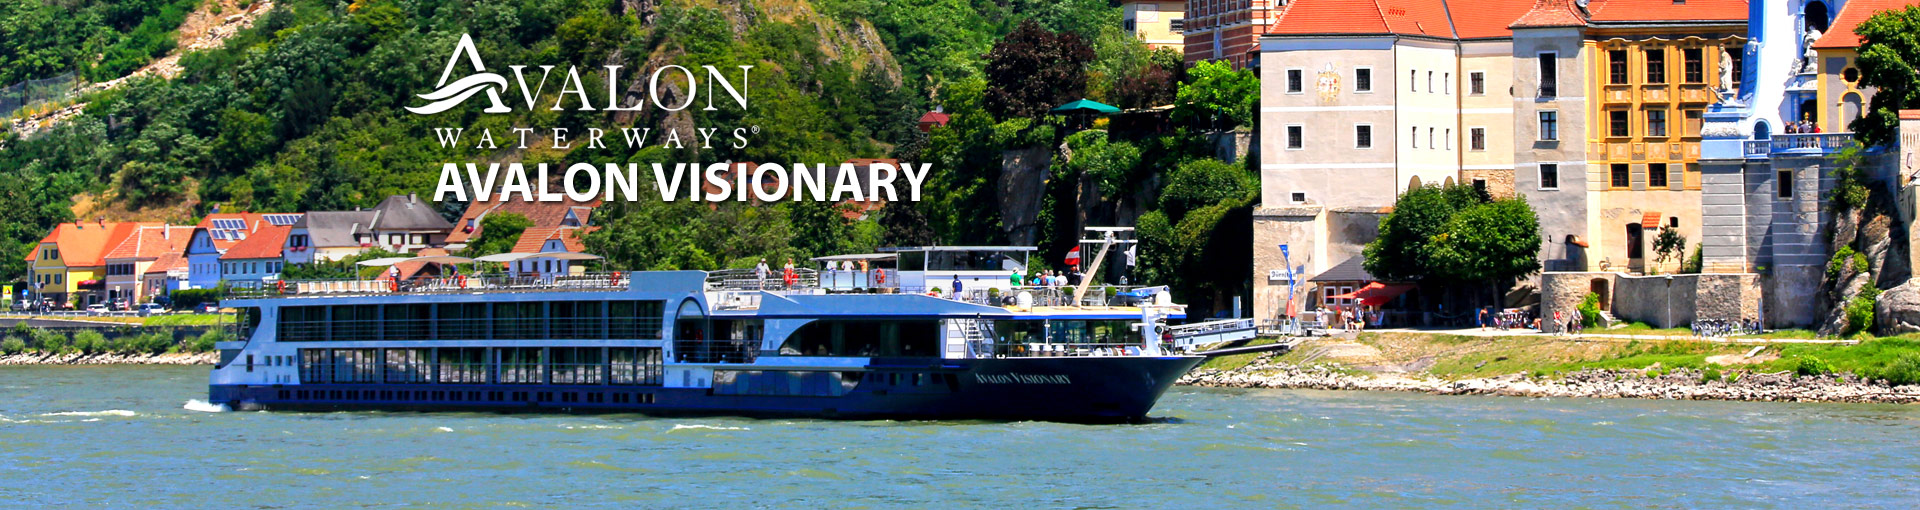 Avalon Waterways Visionary river cruise ship